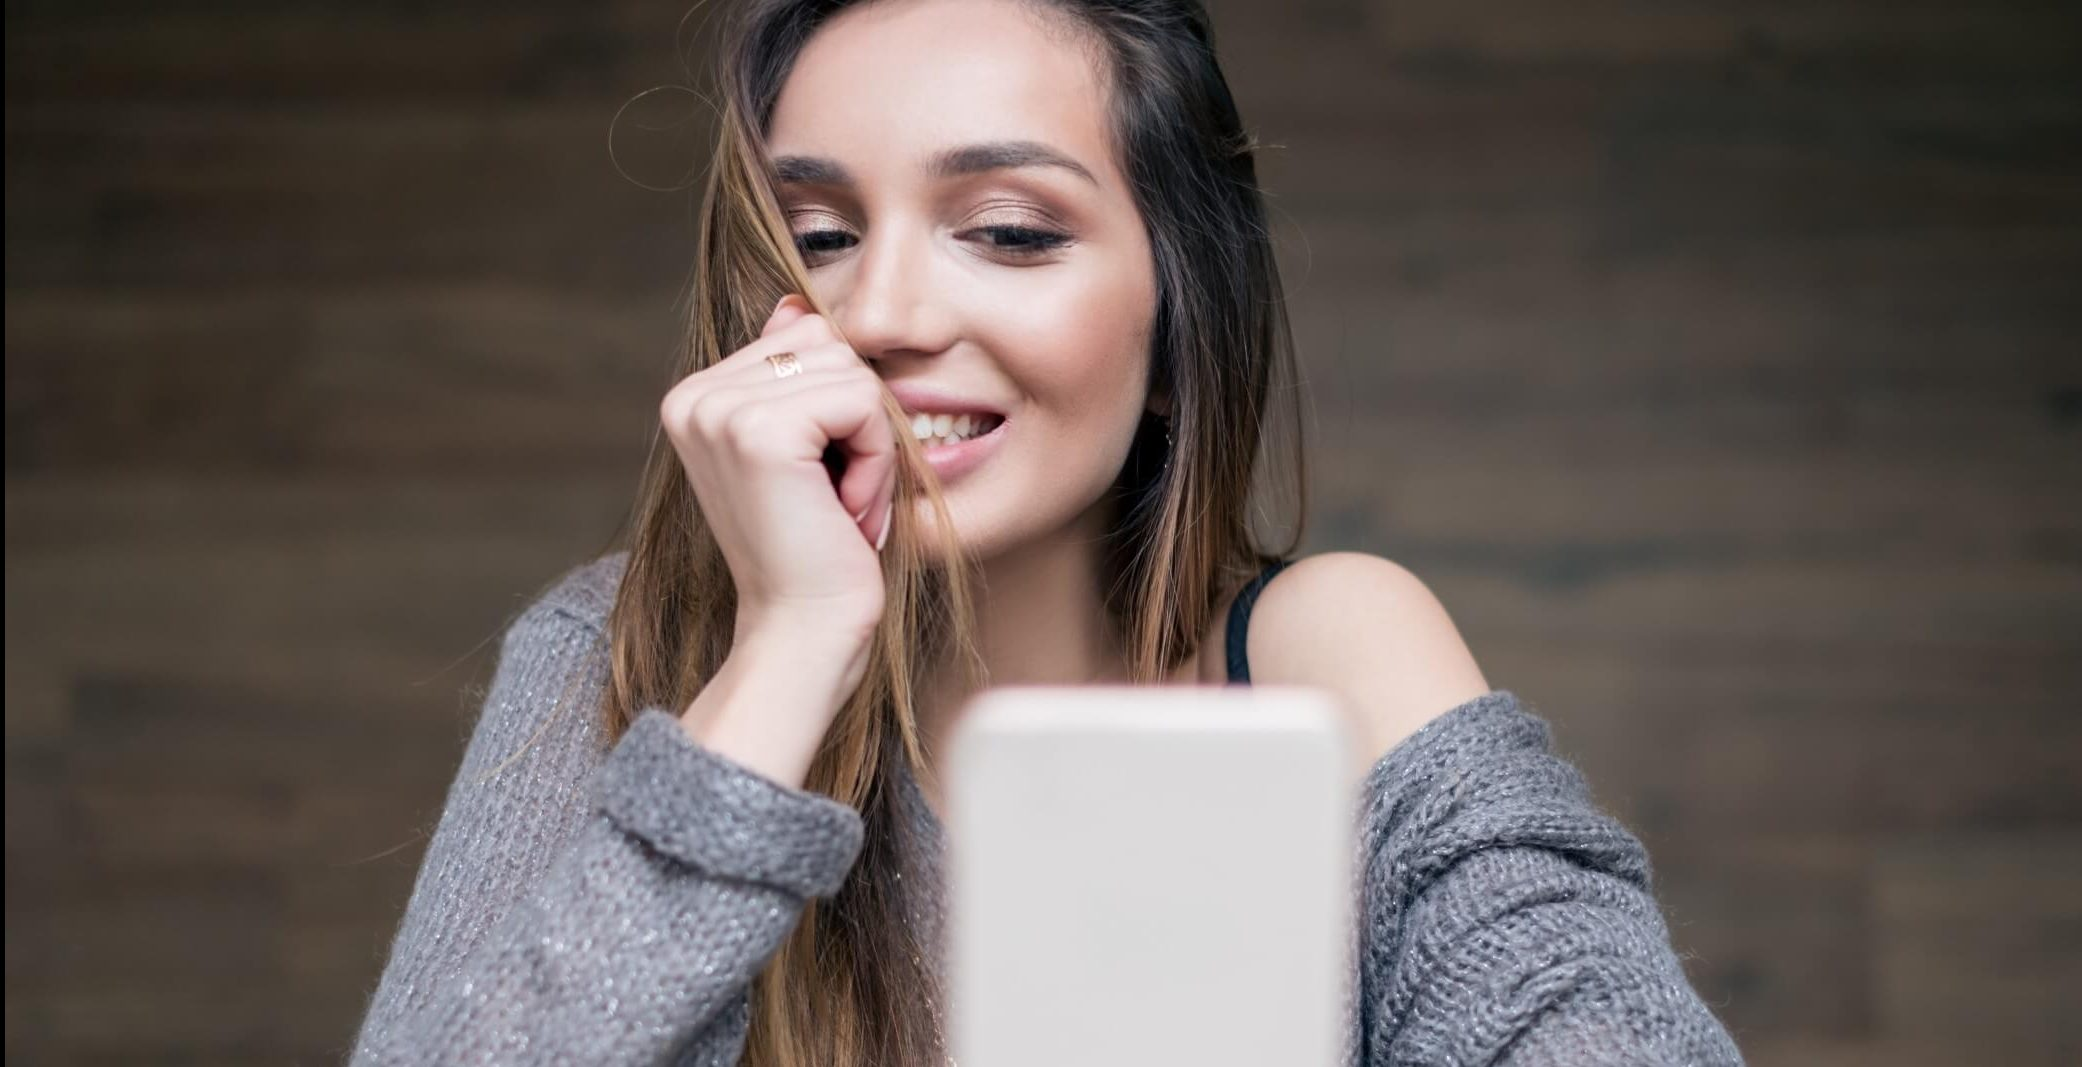 does online therapy work